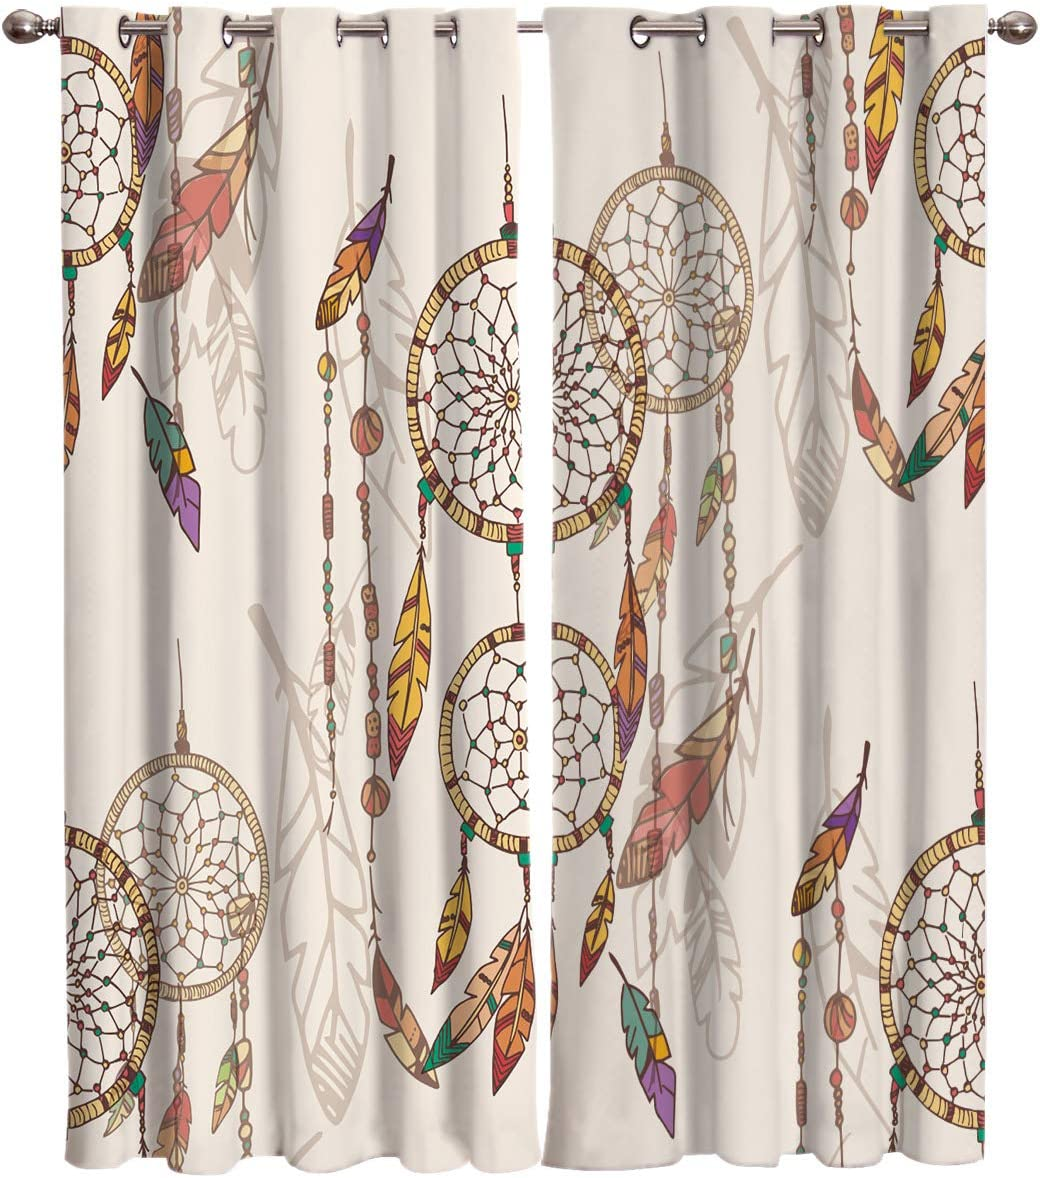 2 Panels Grommet Window Treatment Drapes 80 W x 63 L, Native American Dreamcatcher Magic Feathers Hippie Silhouette – Luxury Decoration Window Crutains for Bedroom Kitchen Office